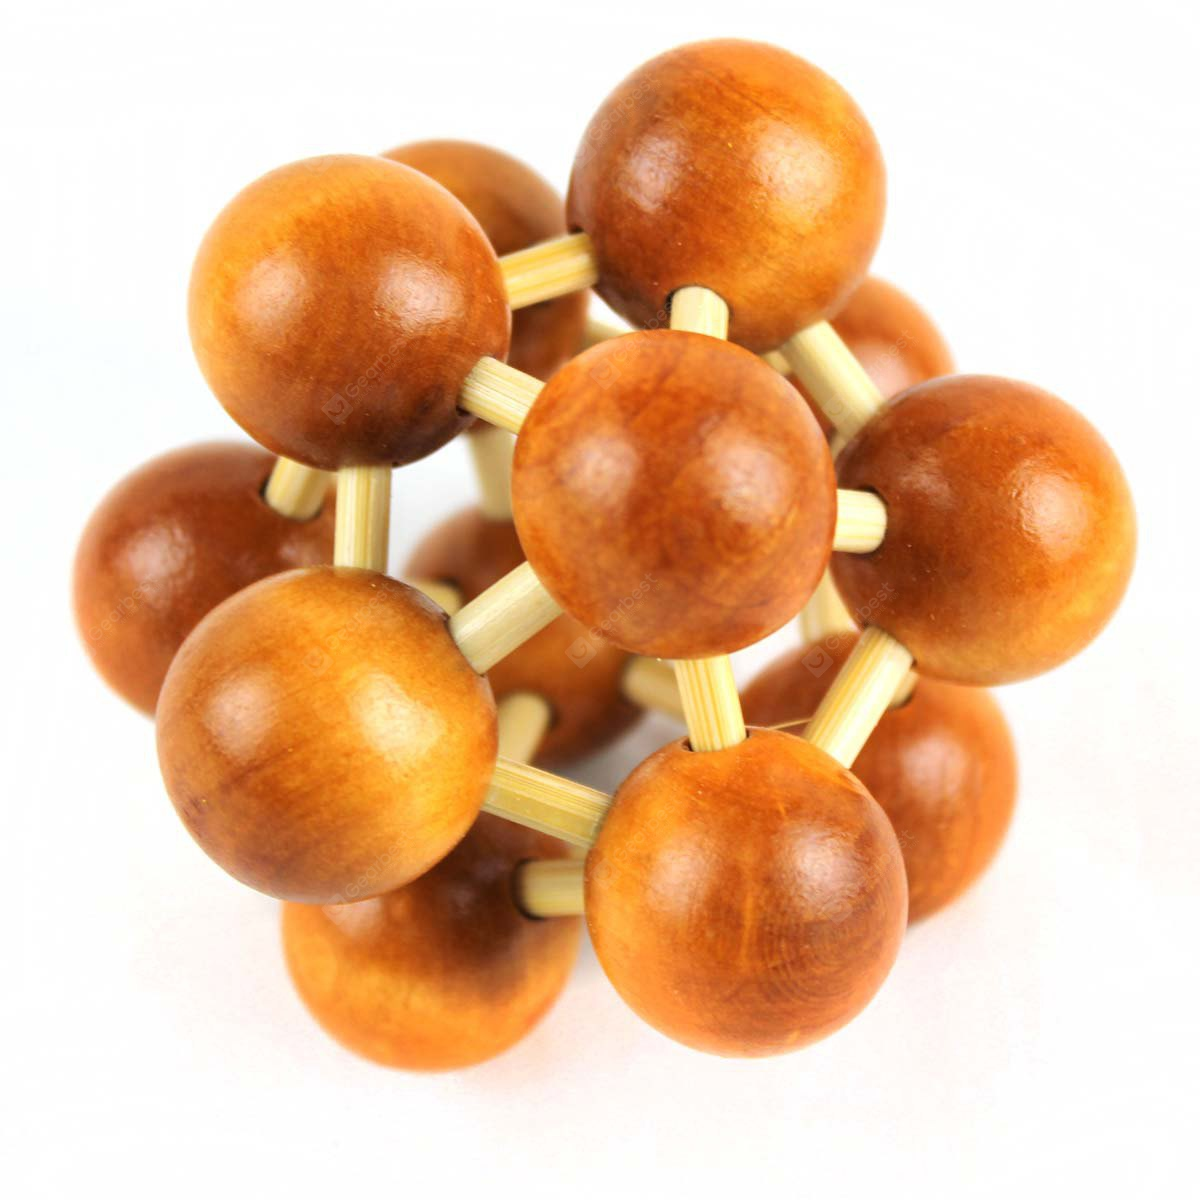 Unlock Brain Cell Style Wooden Puzzle Gene DNA Ball Educational Toy Birthday Present